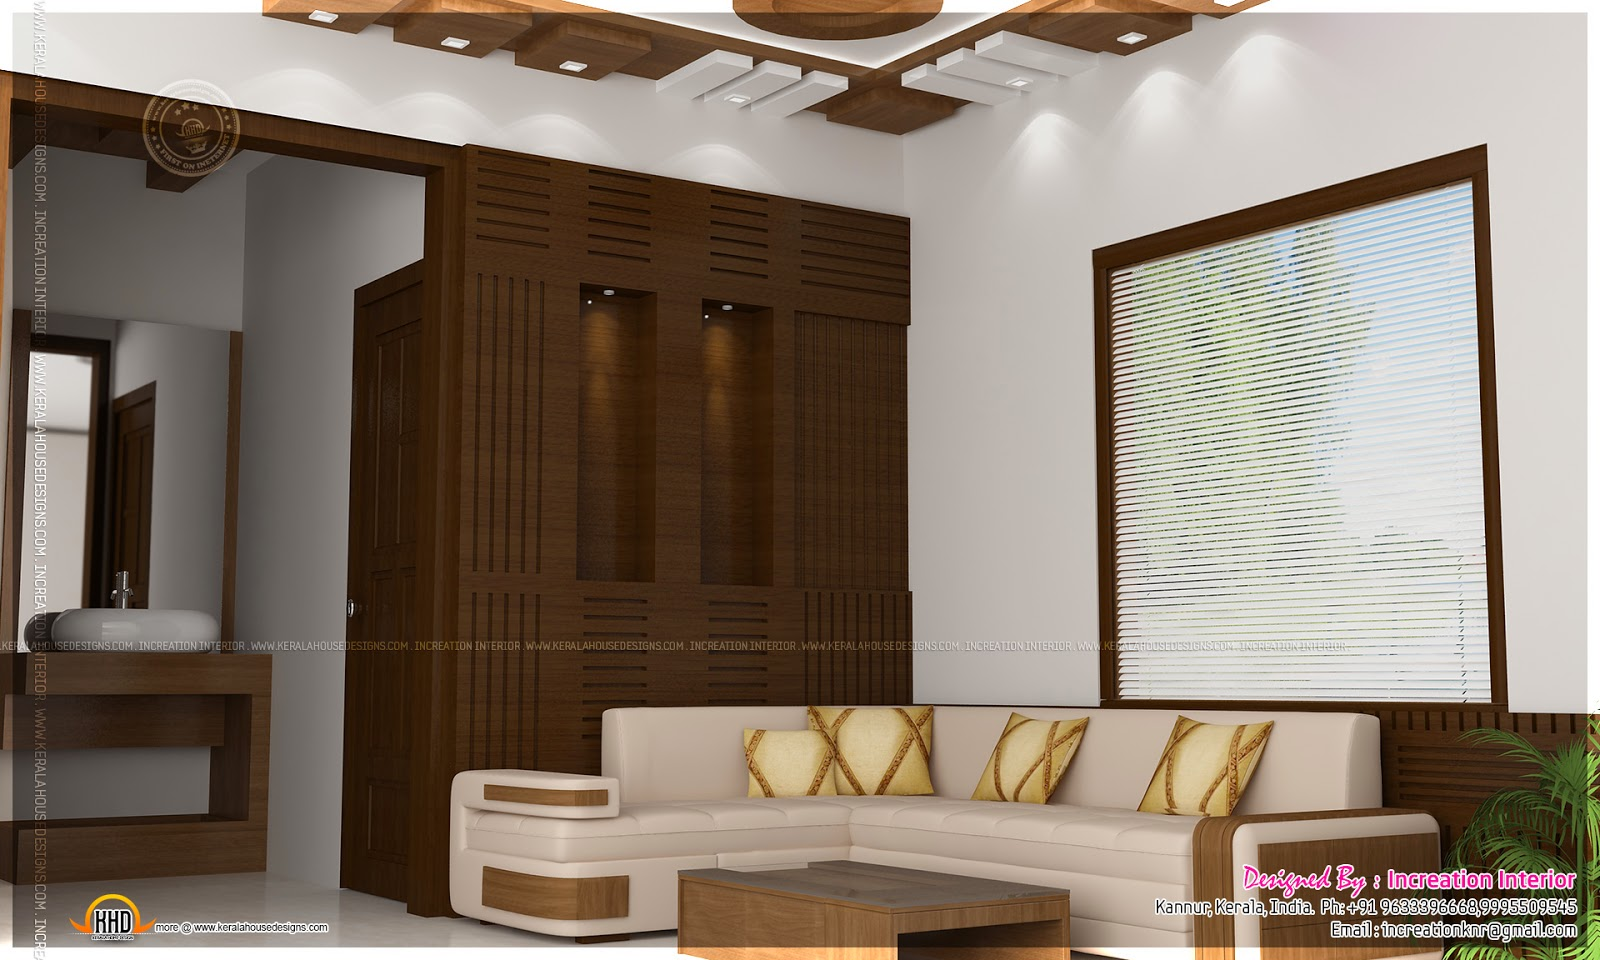 Interior design ideas in kerala for Living room design ideas kerala